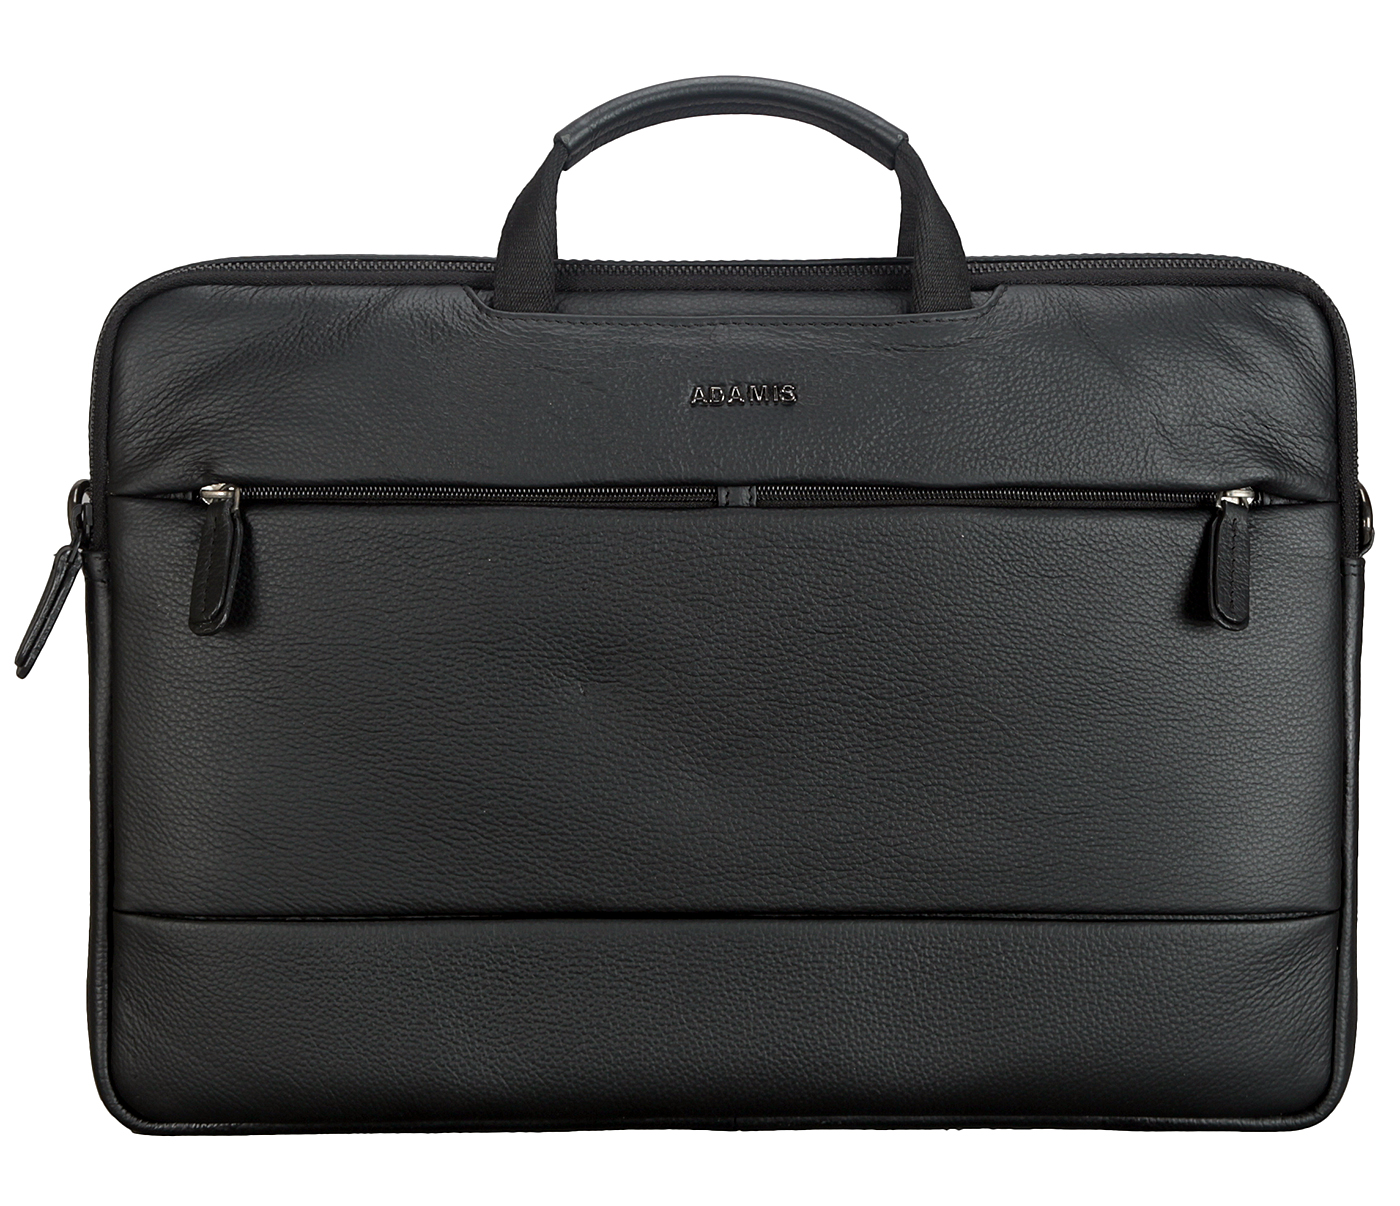 Portfolio / Laptop Bag - F68